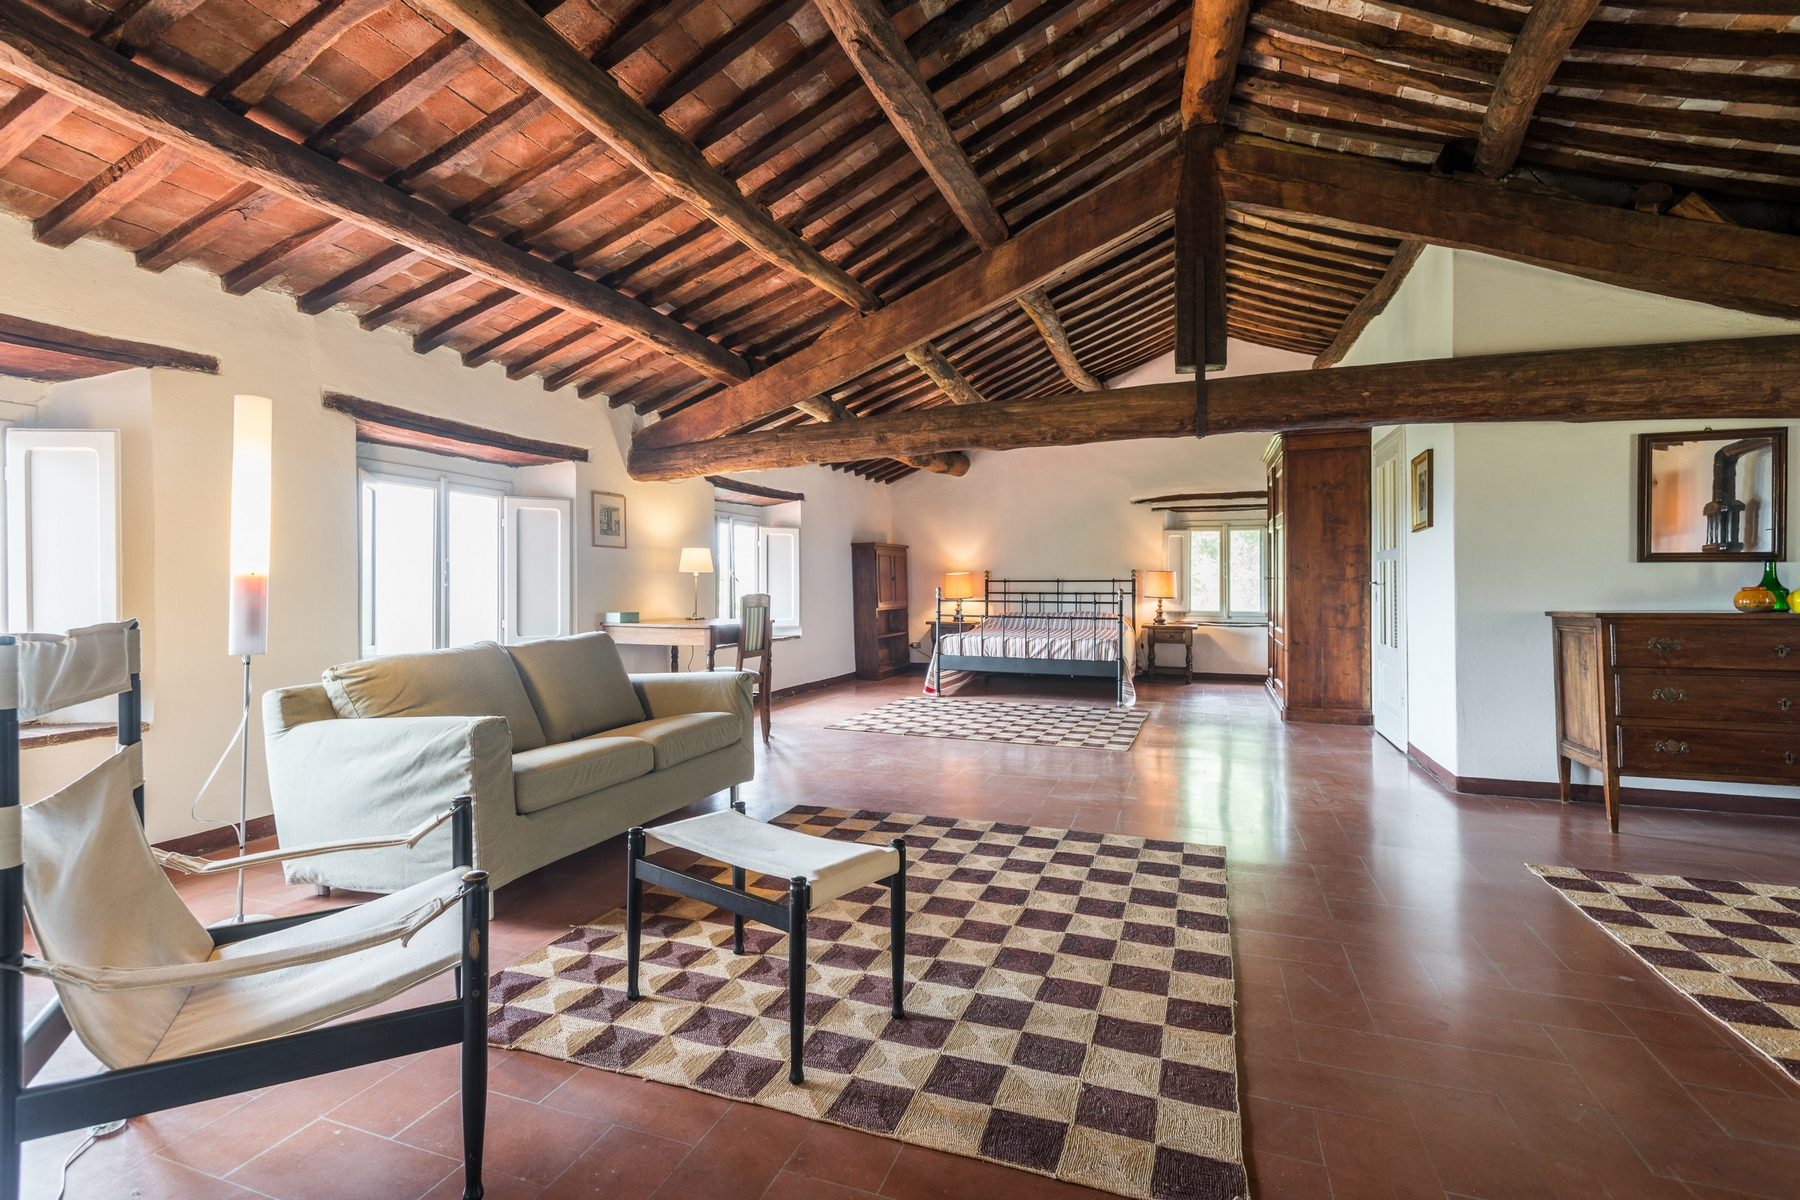 Additional photo for property listing at Country home near Lucca San Concordio di Moriano Lucca, Lucca 55100 Italie